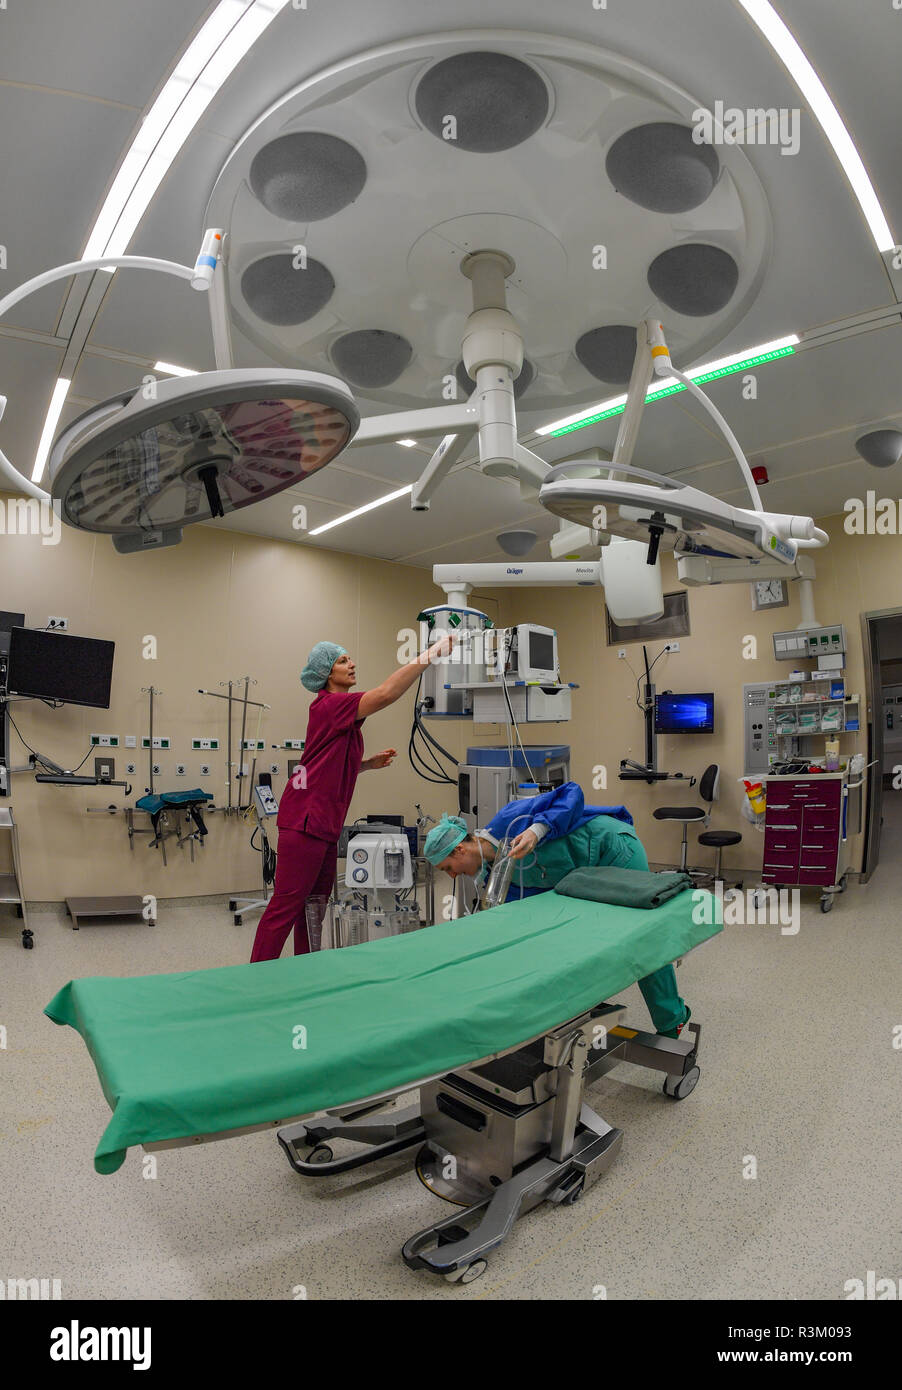 Potsdam, Germany. 23rd Nov, 2018. The 'Opragon8' ventilation system can be seen on the ceiling of an operating theatre in the Oberlinklinik. The new operating theatres with state-of-the-art technology have been in operation for about two months now. They are equipped with the world's most innovative ventilation system, Opragon8, which increases patient safety by maximizing sterility and significantly reduces postoperative wound infections. Credit: Patrick Pleul/dpa-Zentralbild/dpa/Alamy Live News - Stock Image